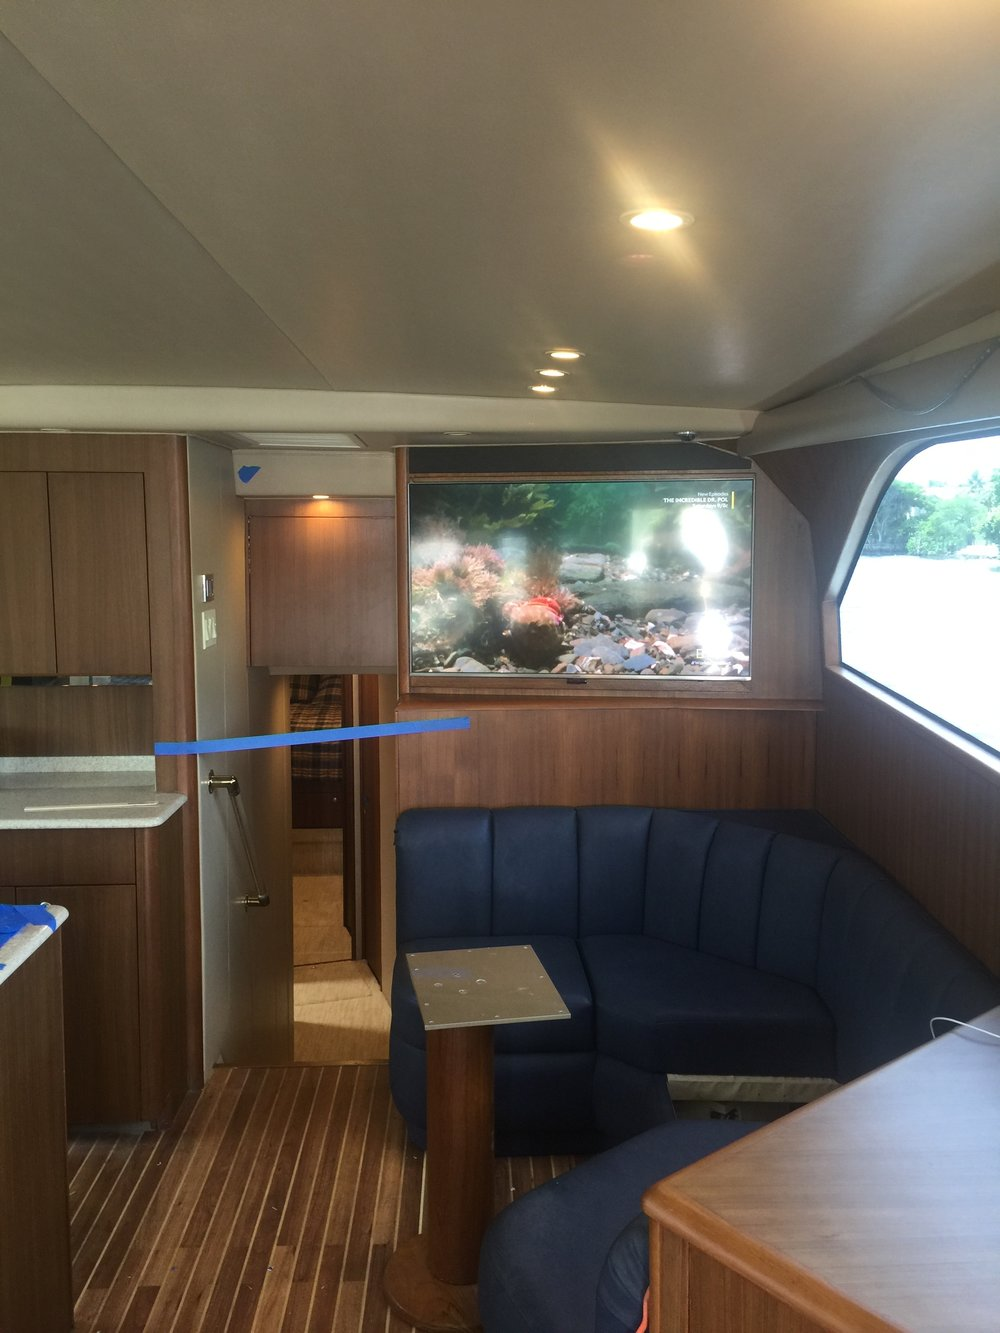 52' Viking wood refinish from high gloss to satin and custom TV installation.